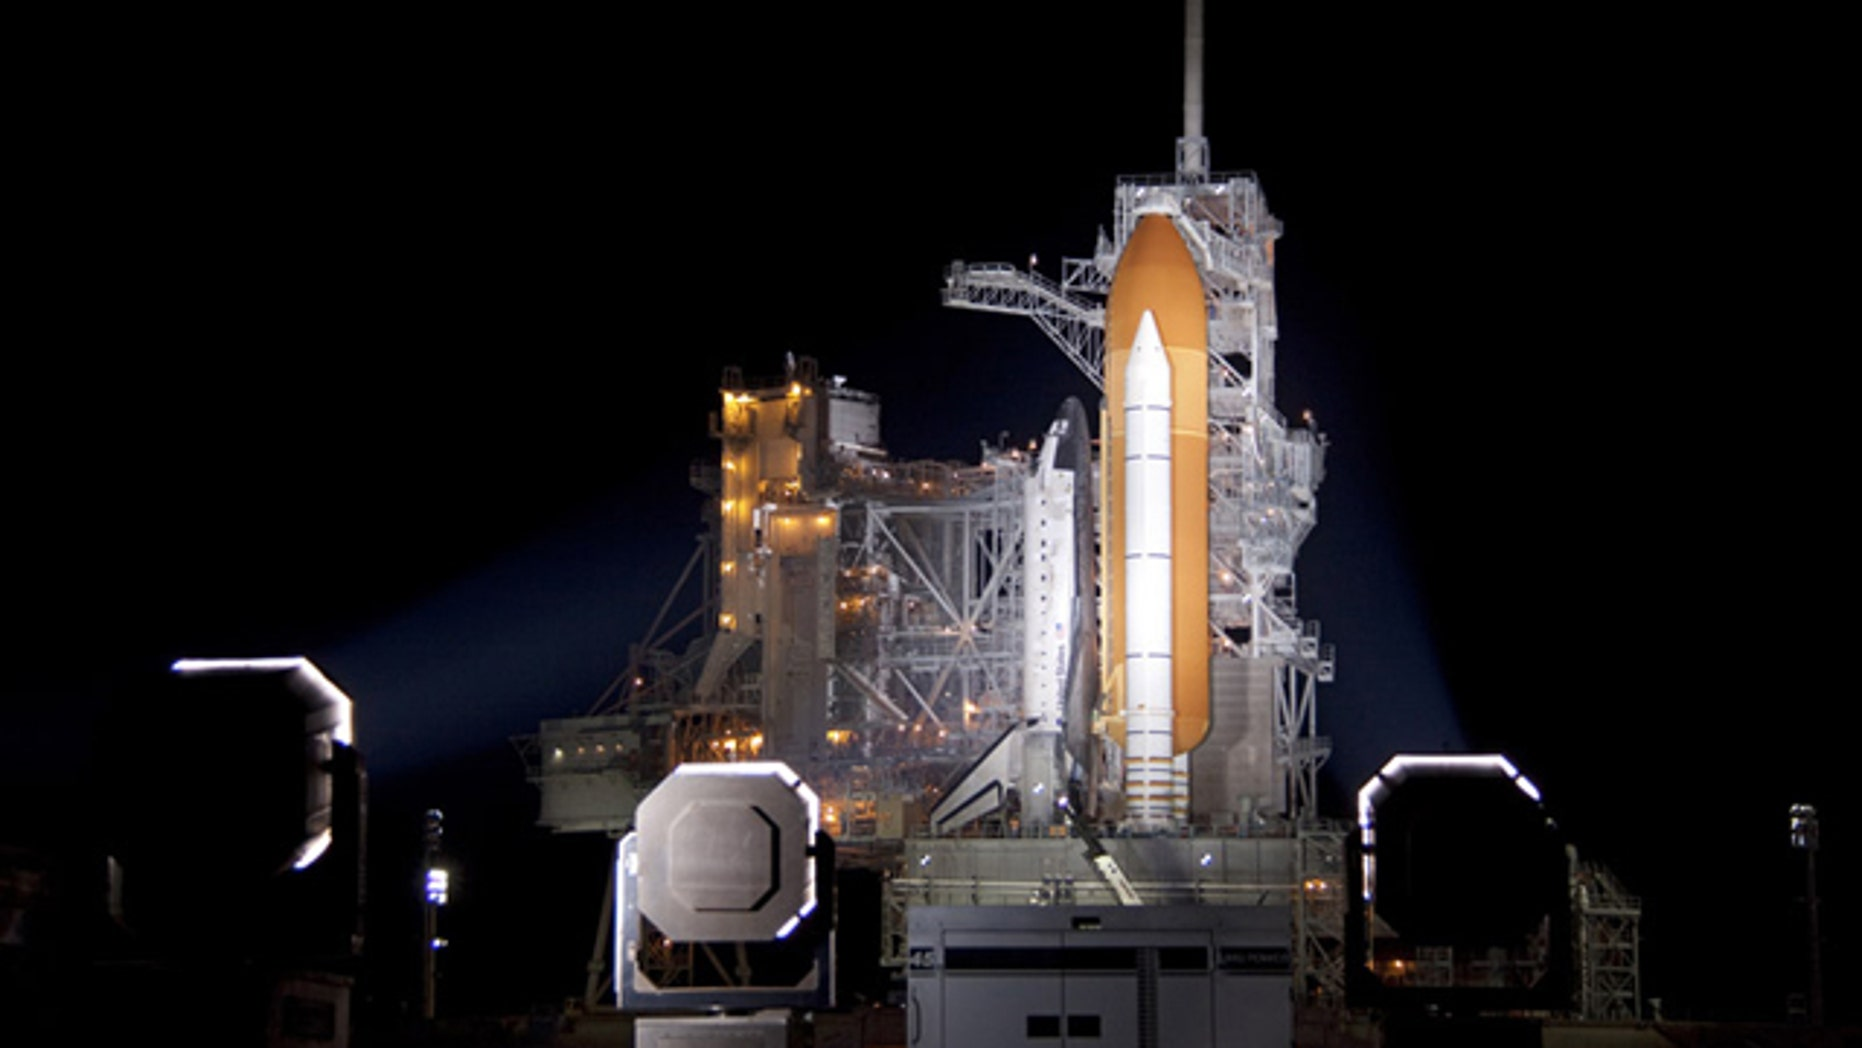 At NASA's Kennedy Space Center in Florida, xenon lights illuminate space shuttle Discovery on Launch Pad 39A following the retraction of the rotating service structure on Nov. 3.